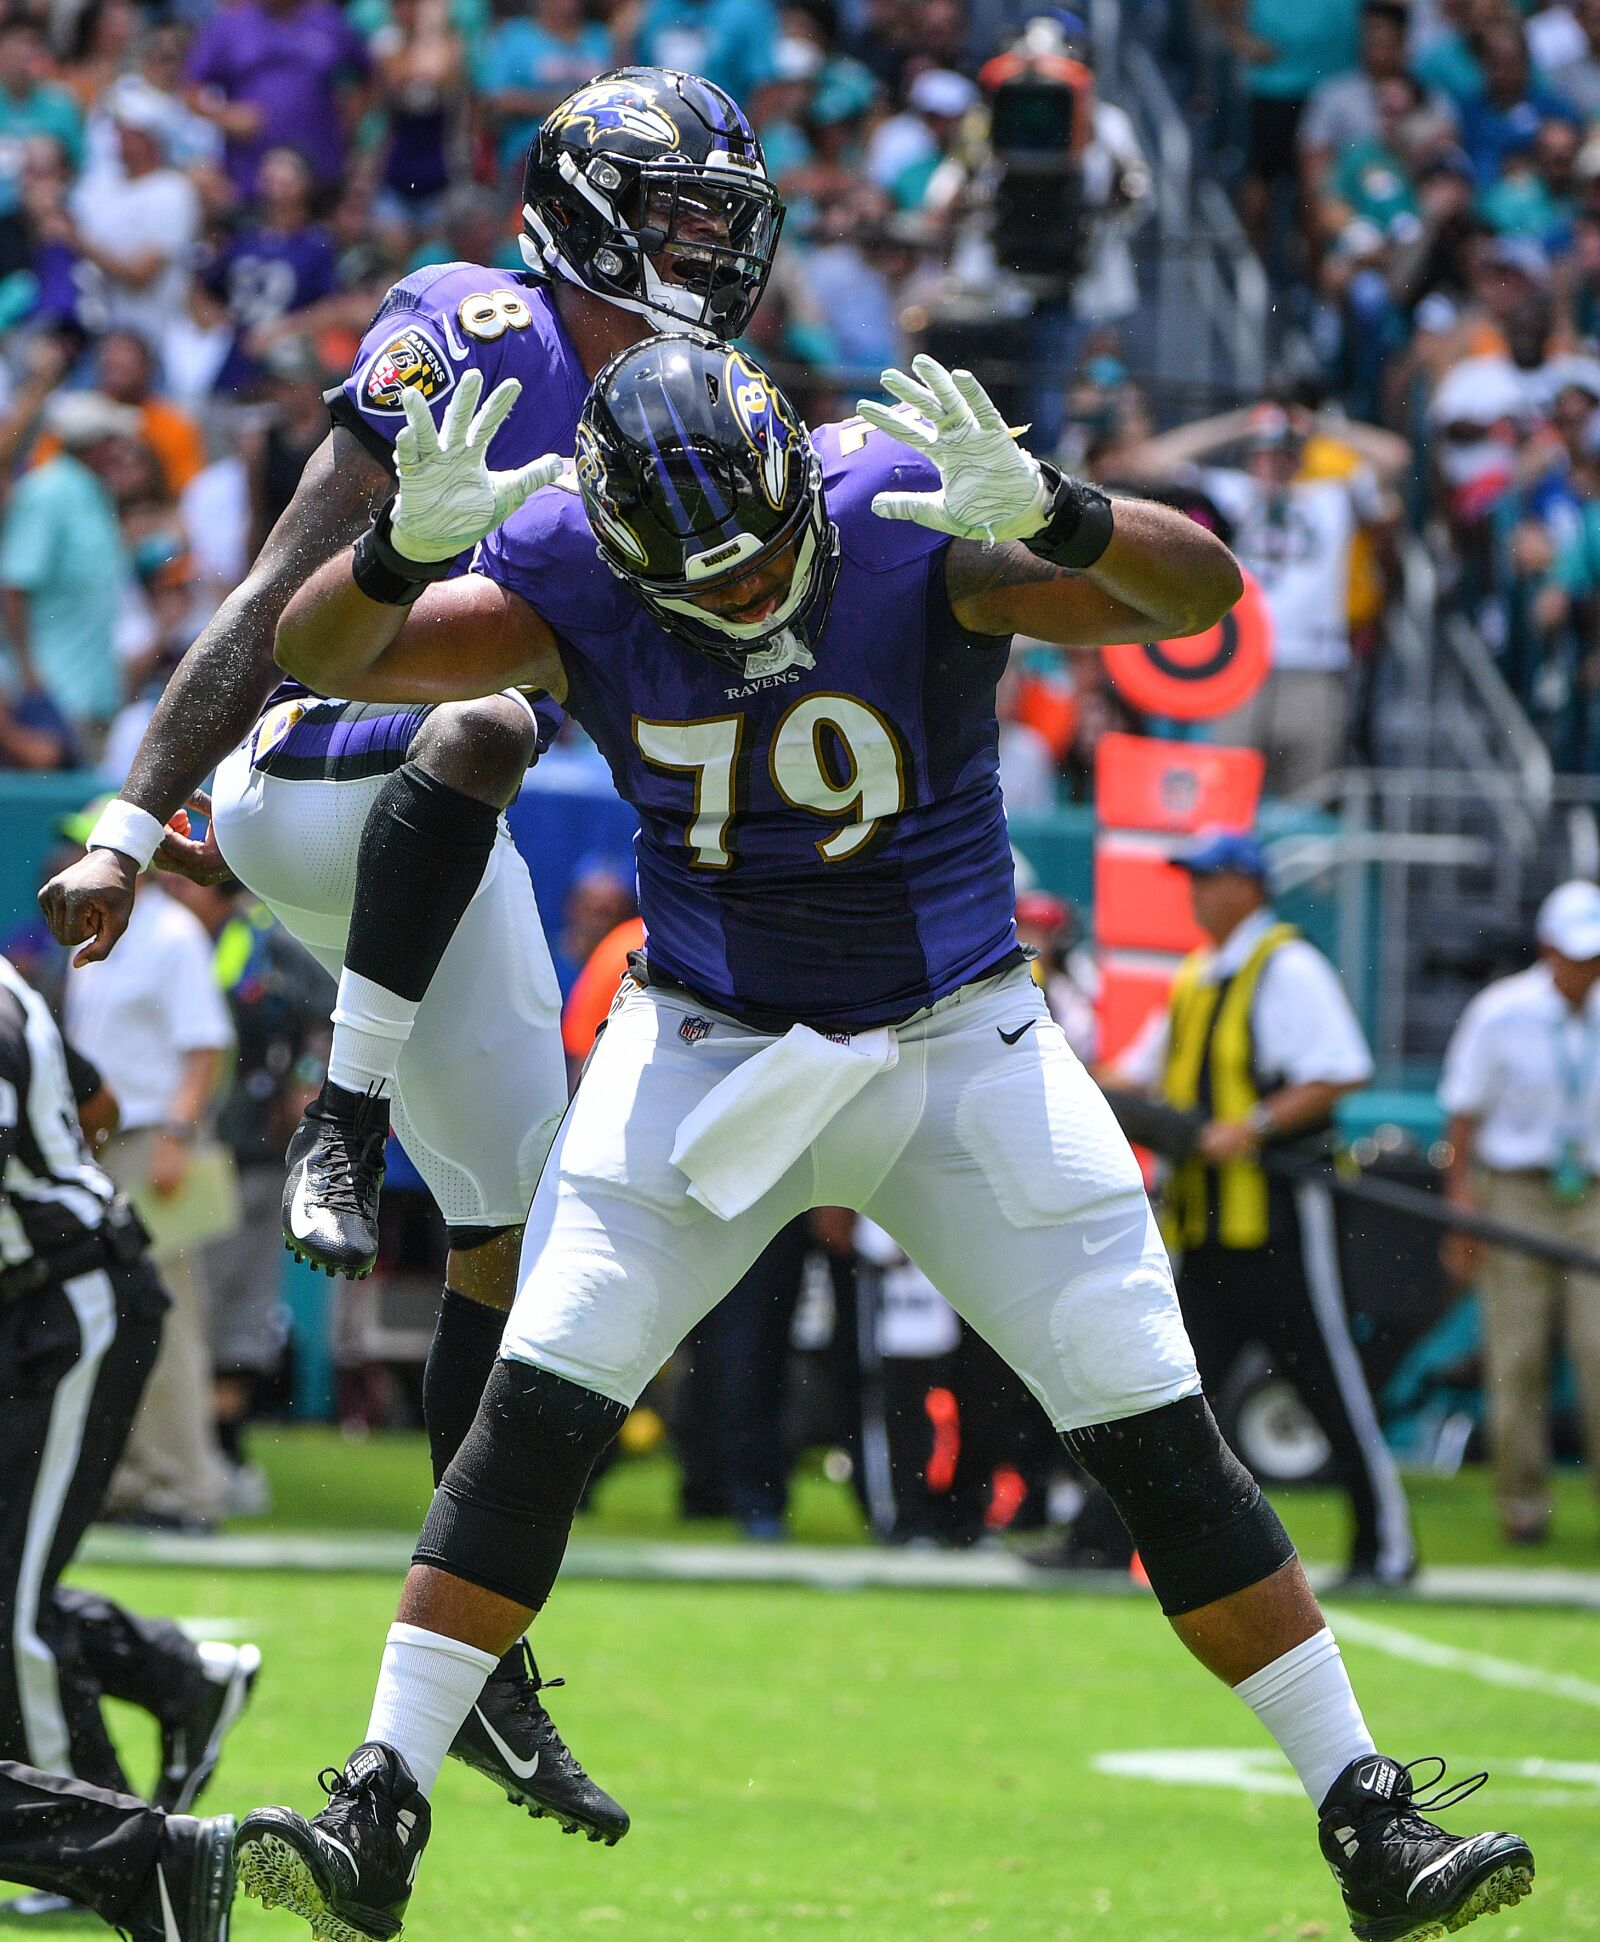 Baltimore Ravens: Ronnie Stanley deserving of All-Pro praise